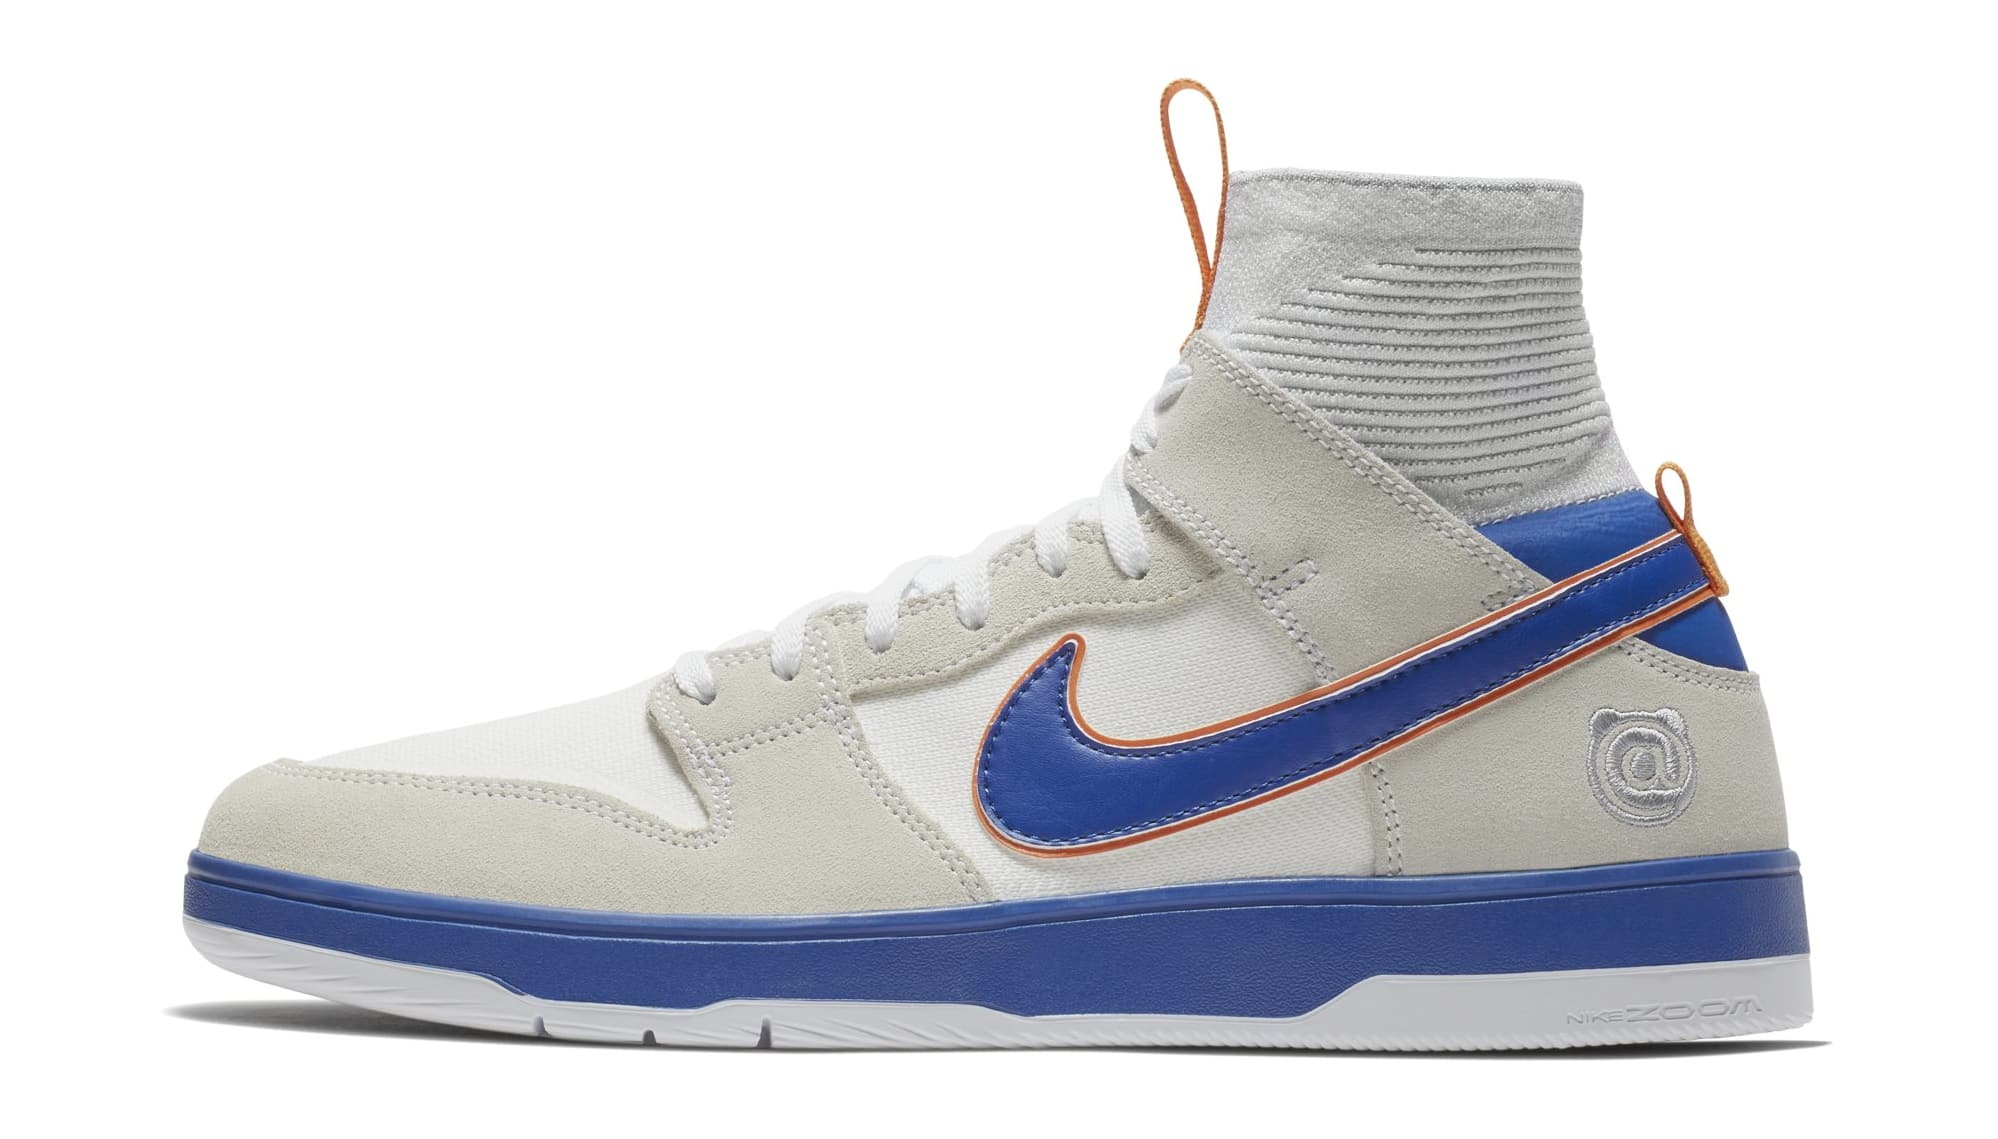 reputable site 5a4ac 2eb9e Nike x Medicom SB Zoom Dunk Elite High Bearbrick White College Blue 918287- 147